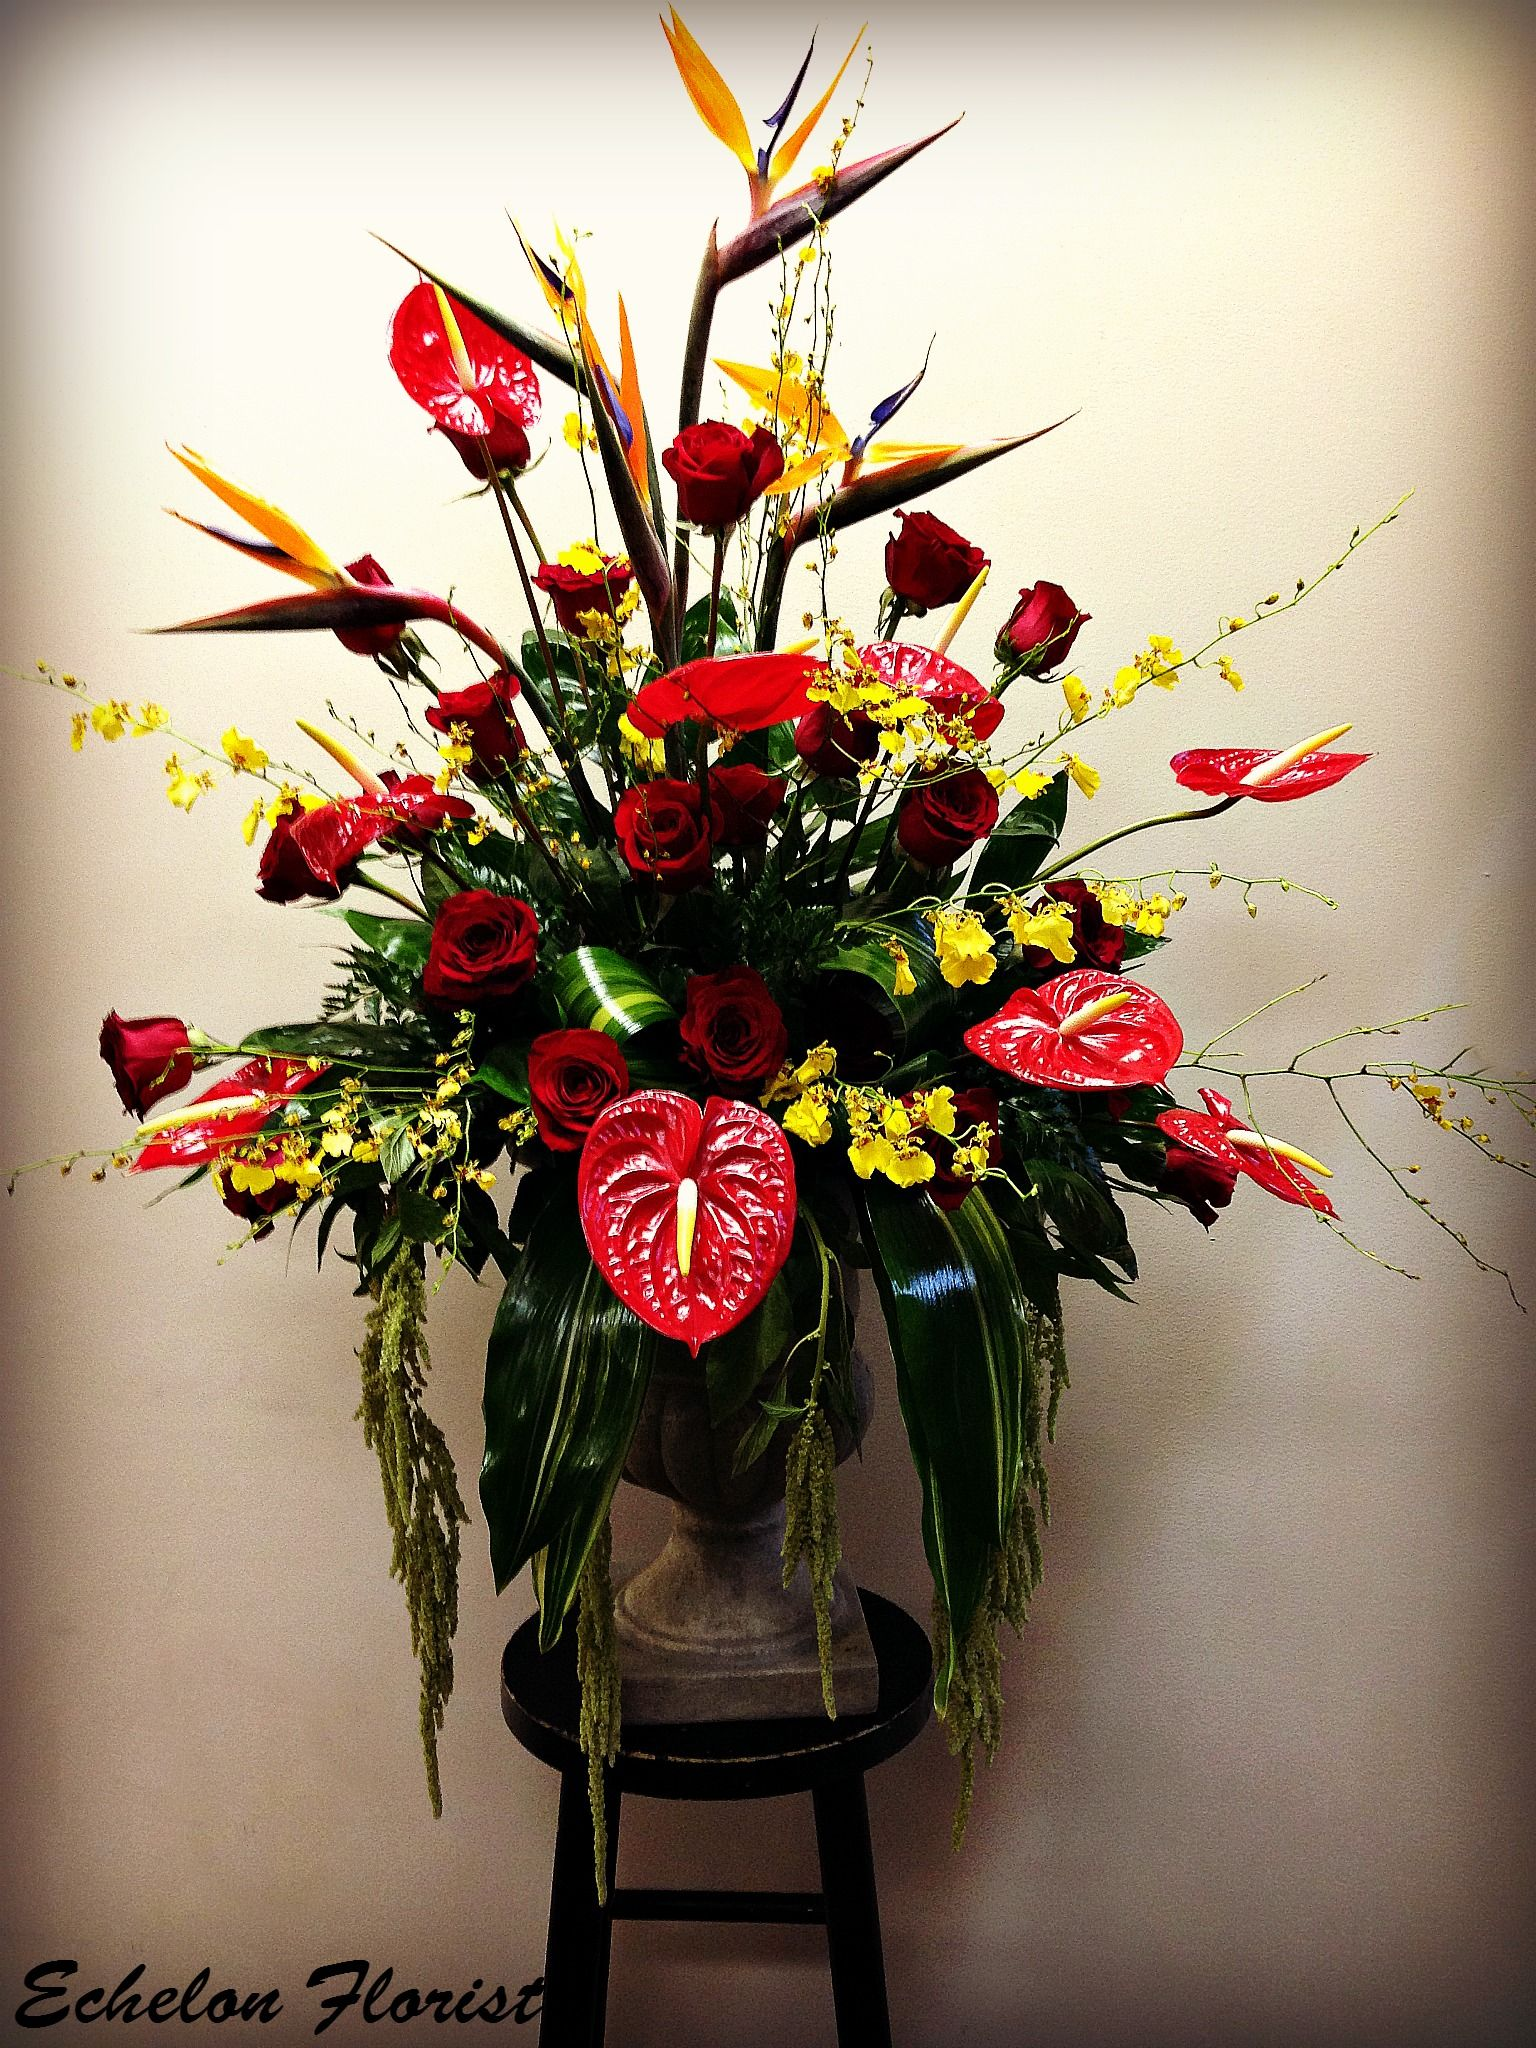 Red Sympathy Arrangement With Birds Of Paradise Roses Anthurium And Dancing Lady Orchids Sympathy Flowers Anthurium Sympathy Arrangements